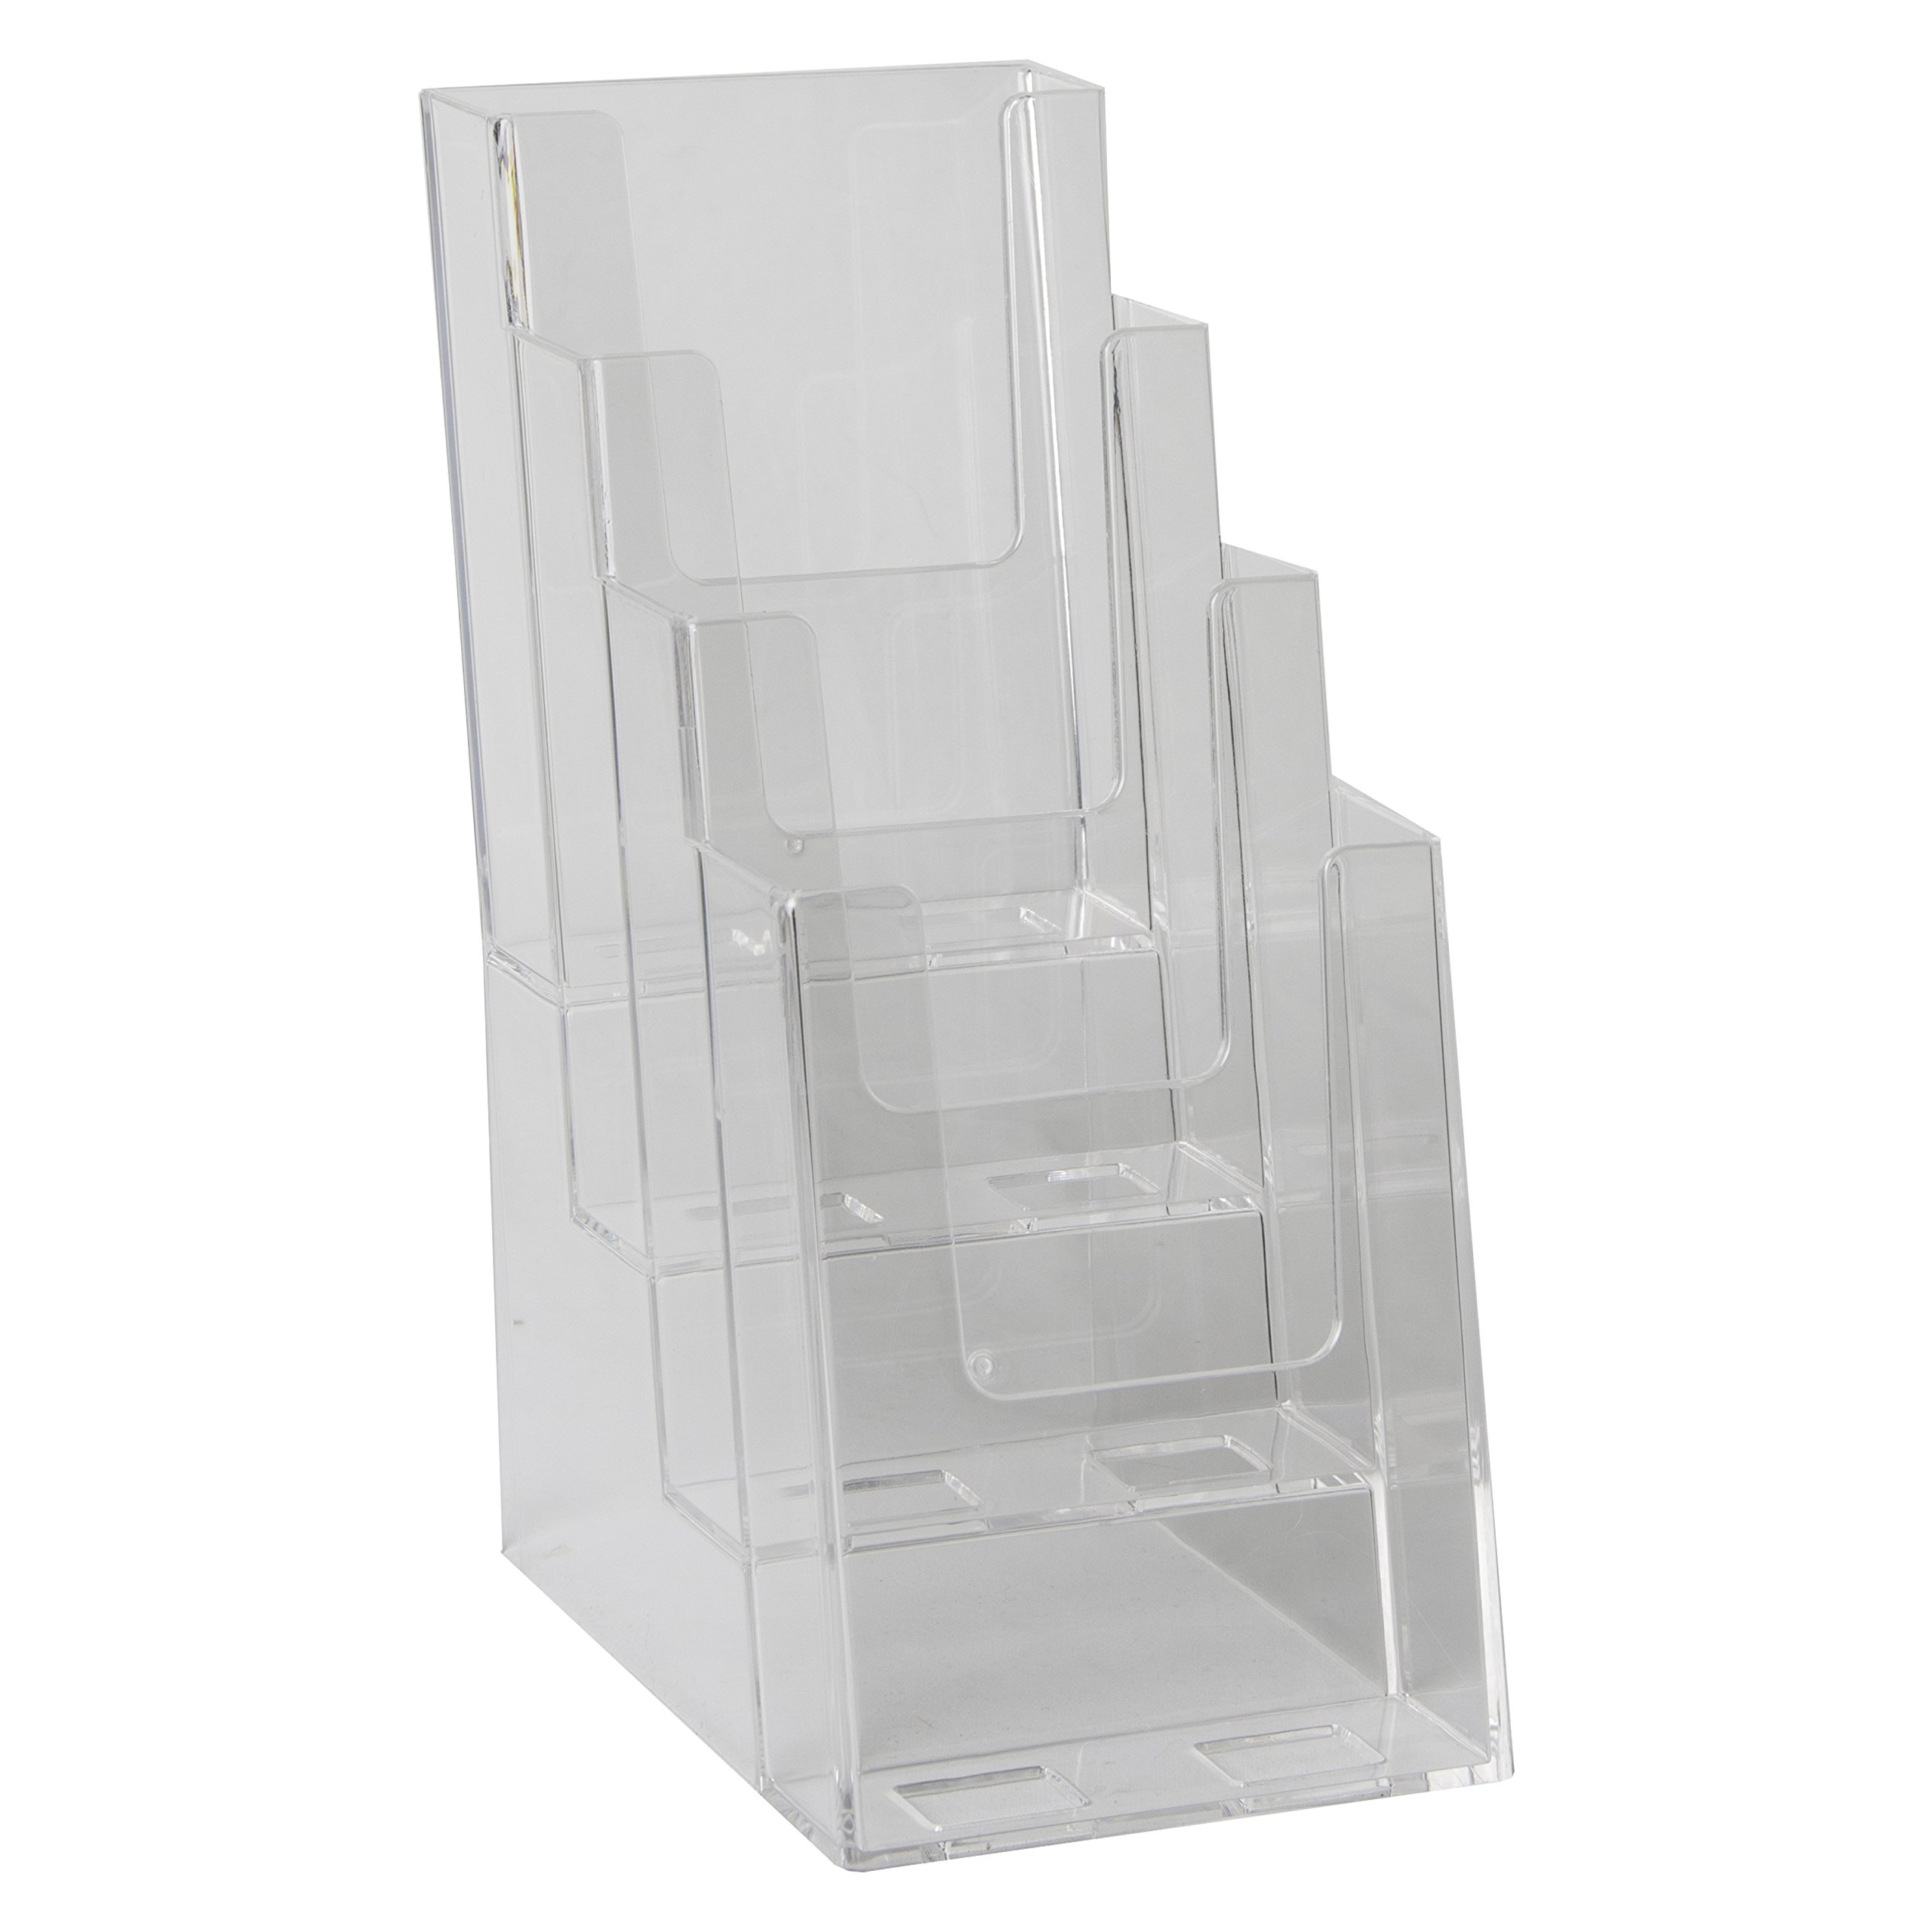 Clear-Ad - LHF-S104 - Acrylic Slant Back 4 Tier Trifold Brochure Display - Plastic Literature Holder for Flyers, Booklets, Bills, Mail, Letters, Cards, Pamphlets, Maps (Pack of 4) by Clear-Ad (Image #5)